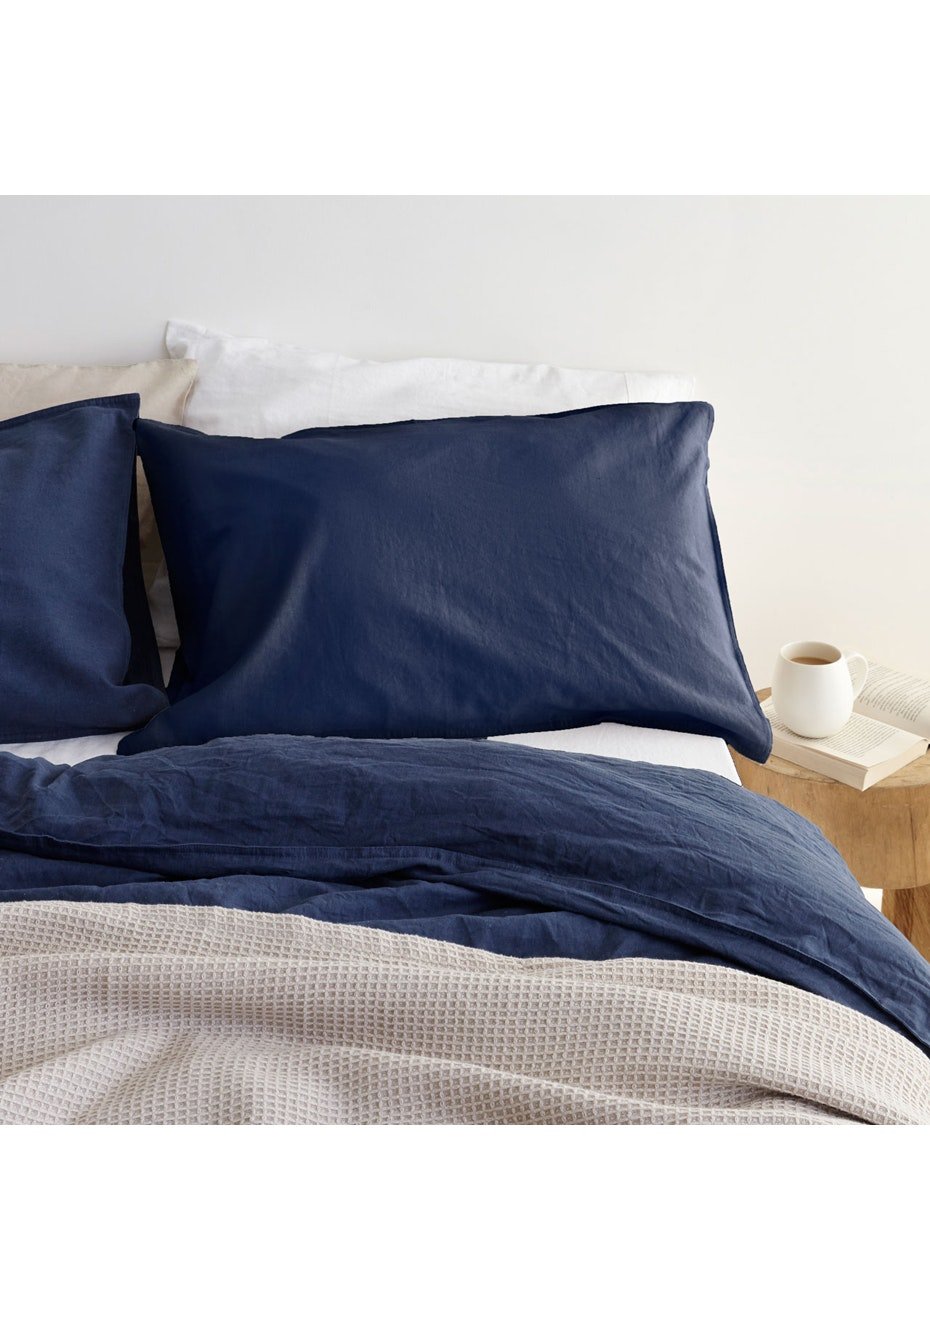 Canningvale - Sogno Linen Cotton Duvet Cover Set Indigo Blue King Bed